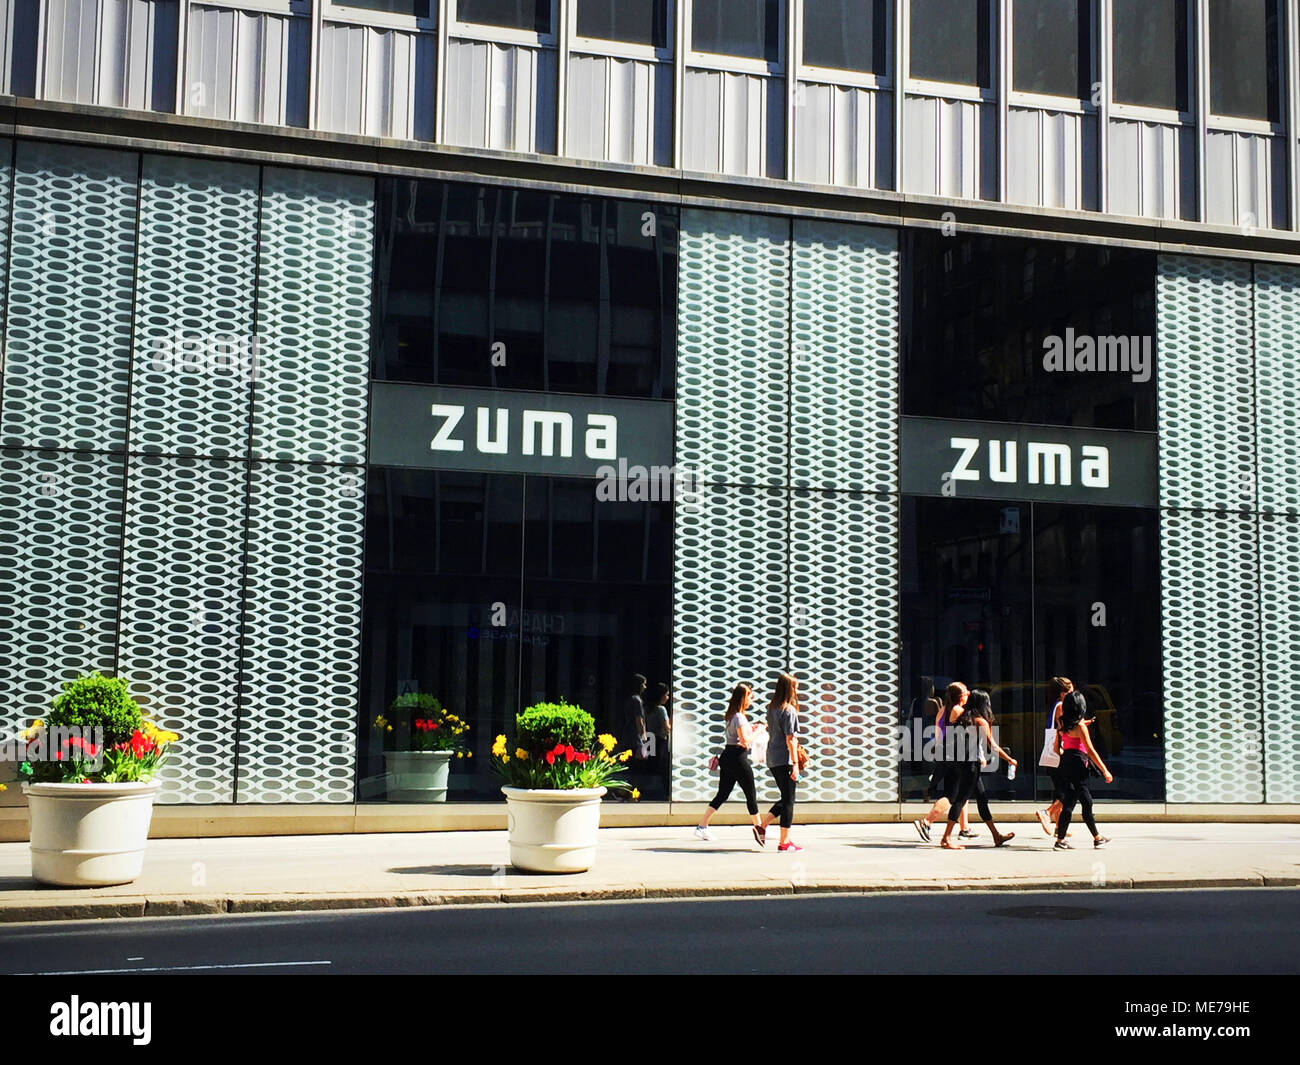 Zuma Restaurant Exterior on Madison Avenue, NYC, USA Stock Photo